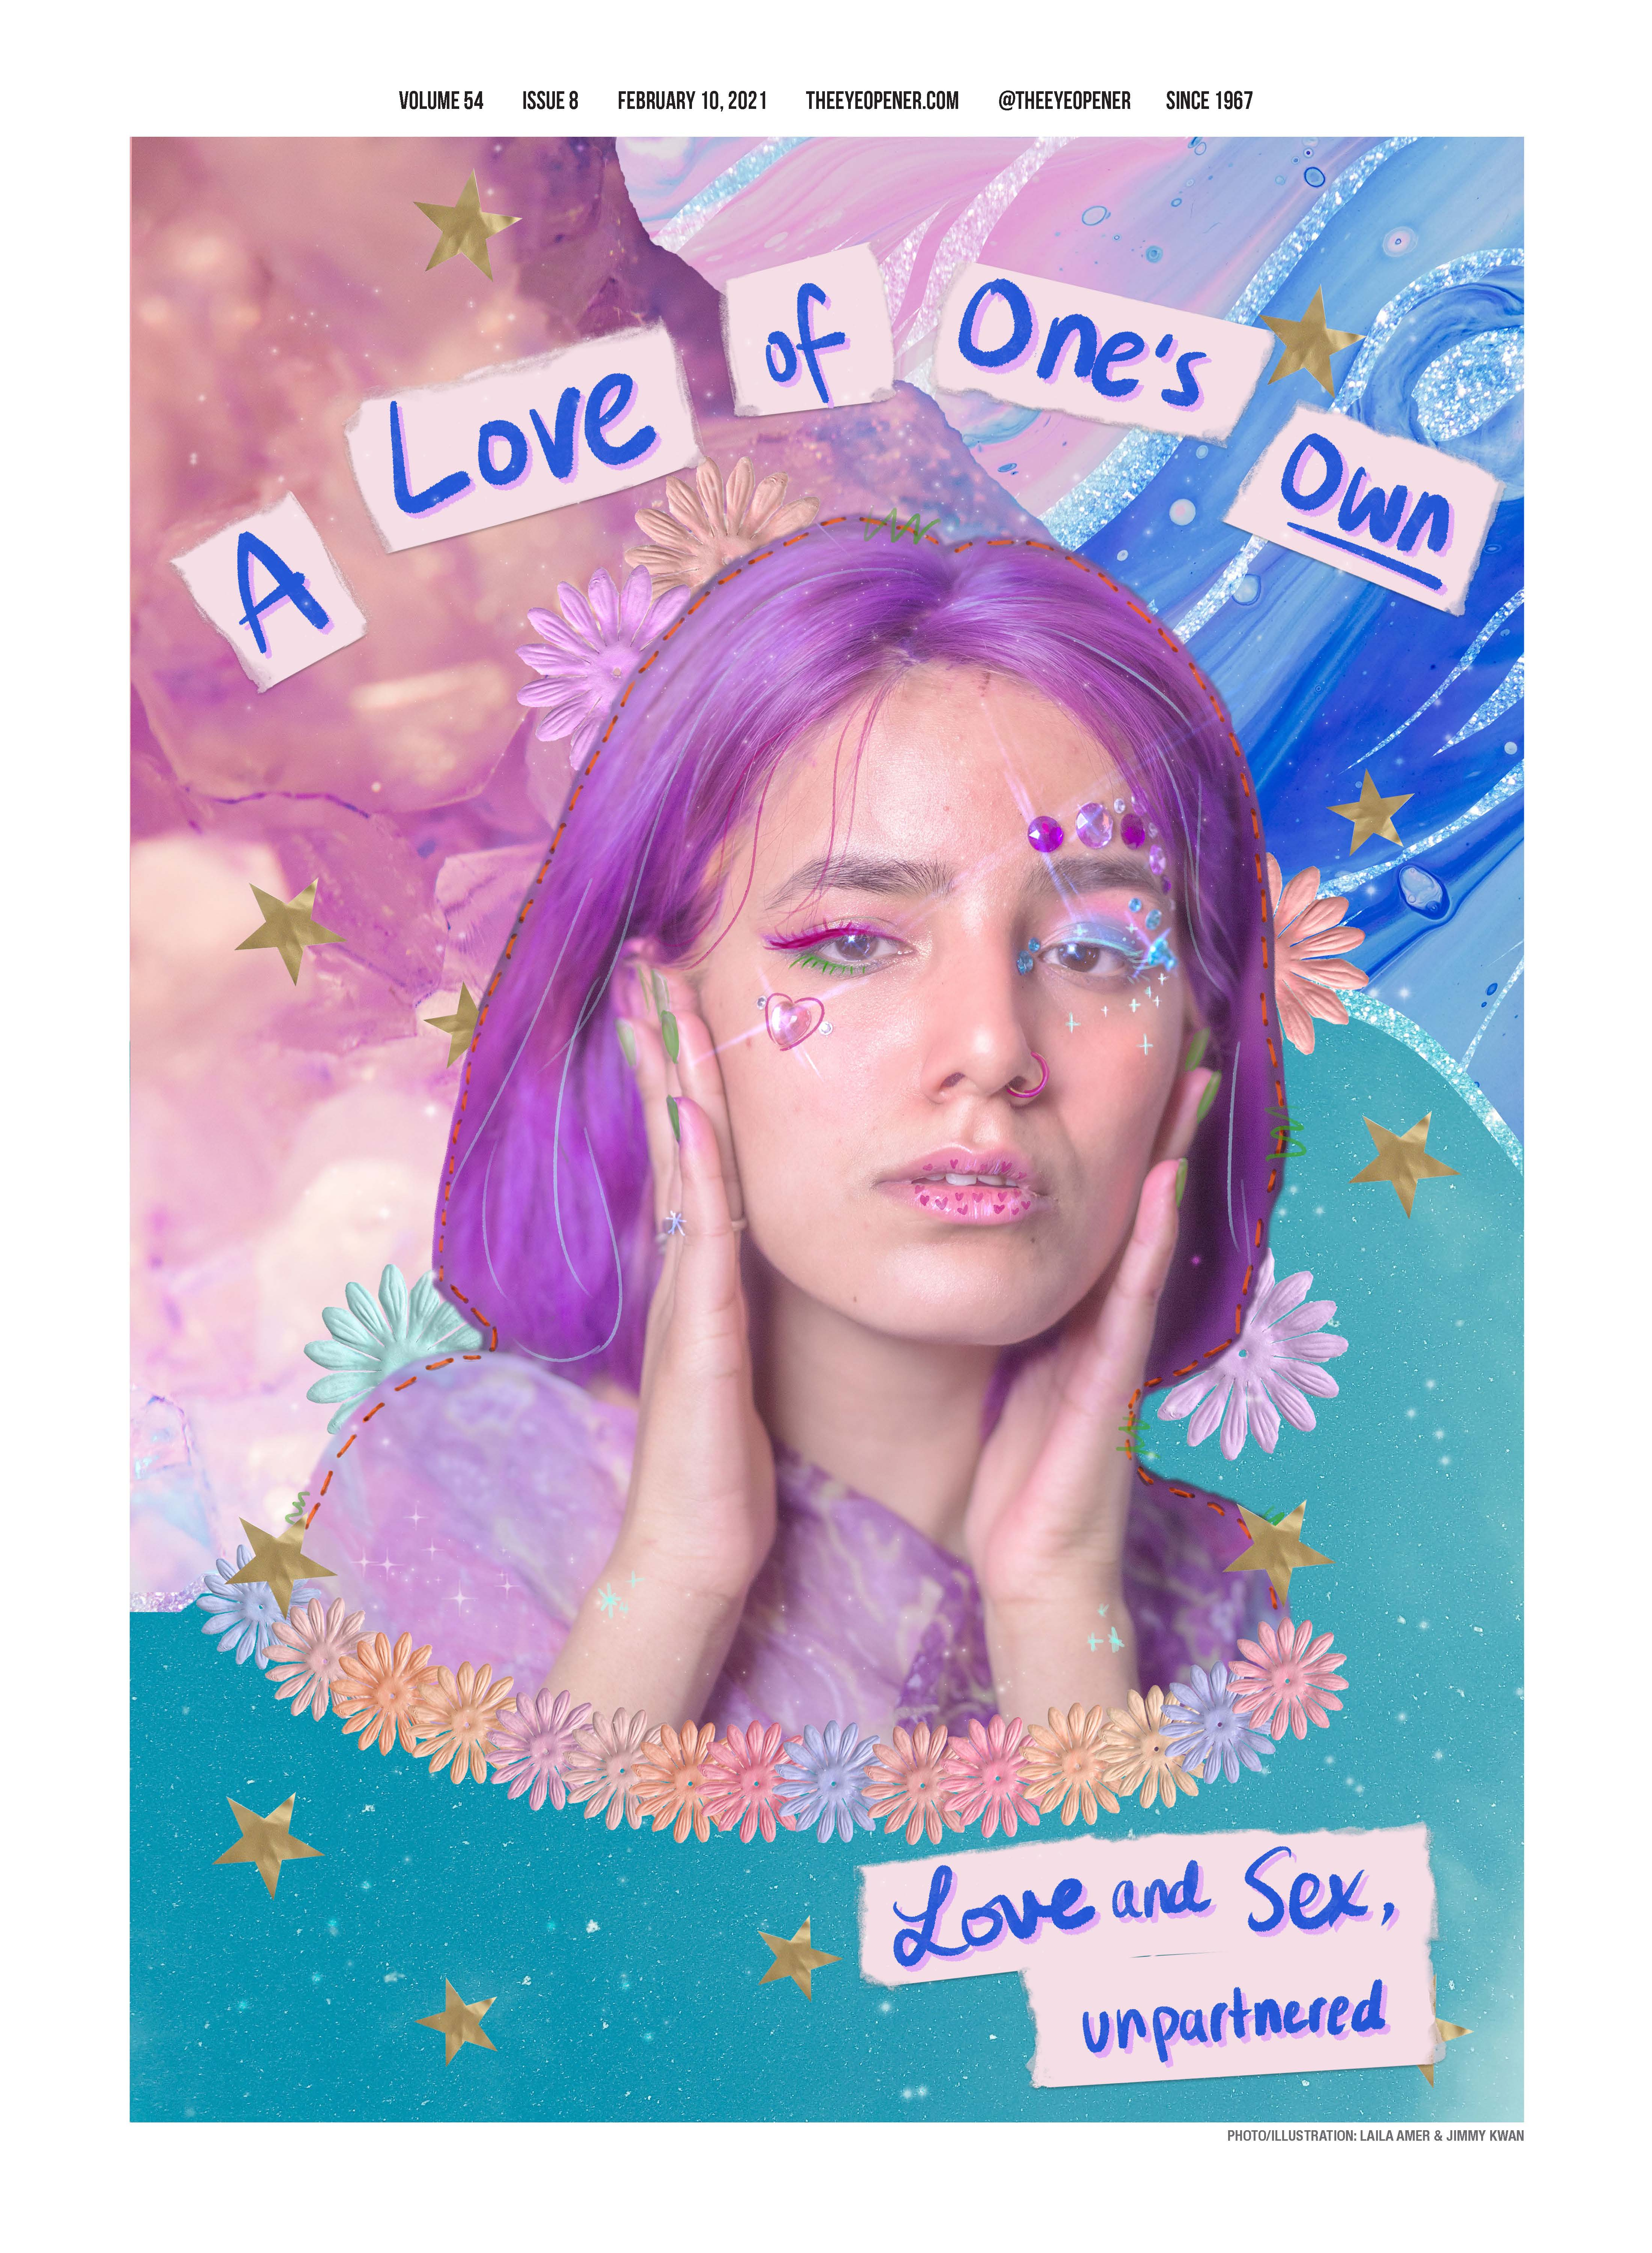 """Cover of The Eyeopener for February 10, 2021. Cover features a profile shot of a woman with purple hair, brightly coloured nails, a purple shirt, blue and pink eyeliner and hearts, rhinestones and sparkles on her face. The profile is set in front of a collaged background of pink, blue and teal and featuring stars, flowers and sparkles. Headlines reads: A """"Love Of One's Own."""" Dek reads: """"Love and Sex, unpartnered."""" Eyeopener letterhead reads: """"Volume 54 Issue 8 theeyeopener.com @theeyeopener Since 1967."""